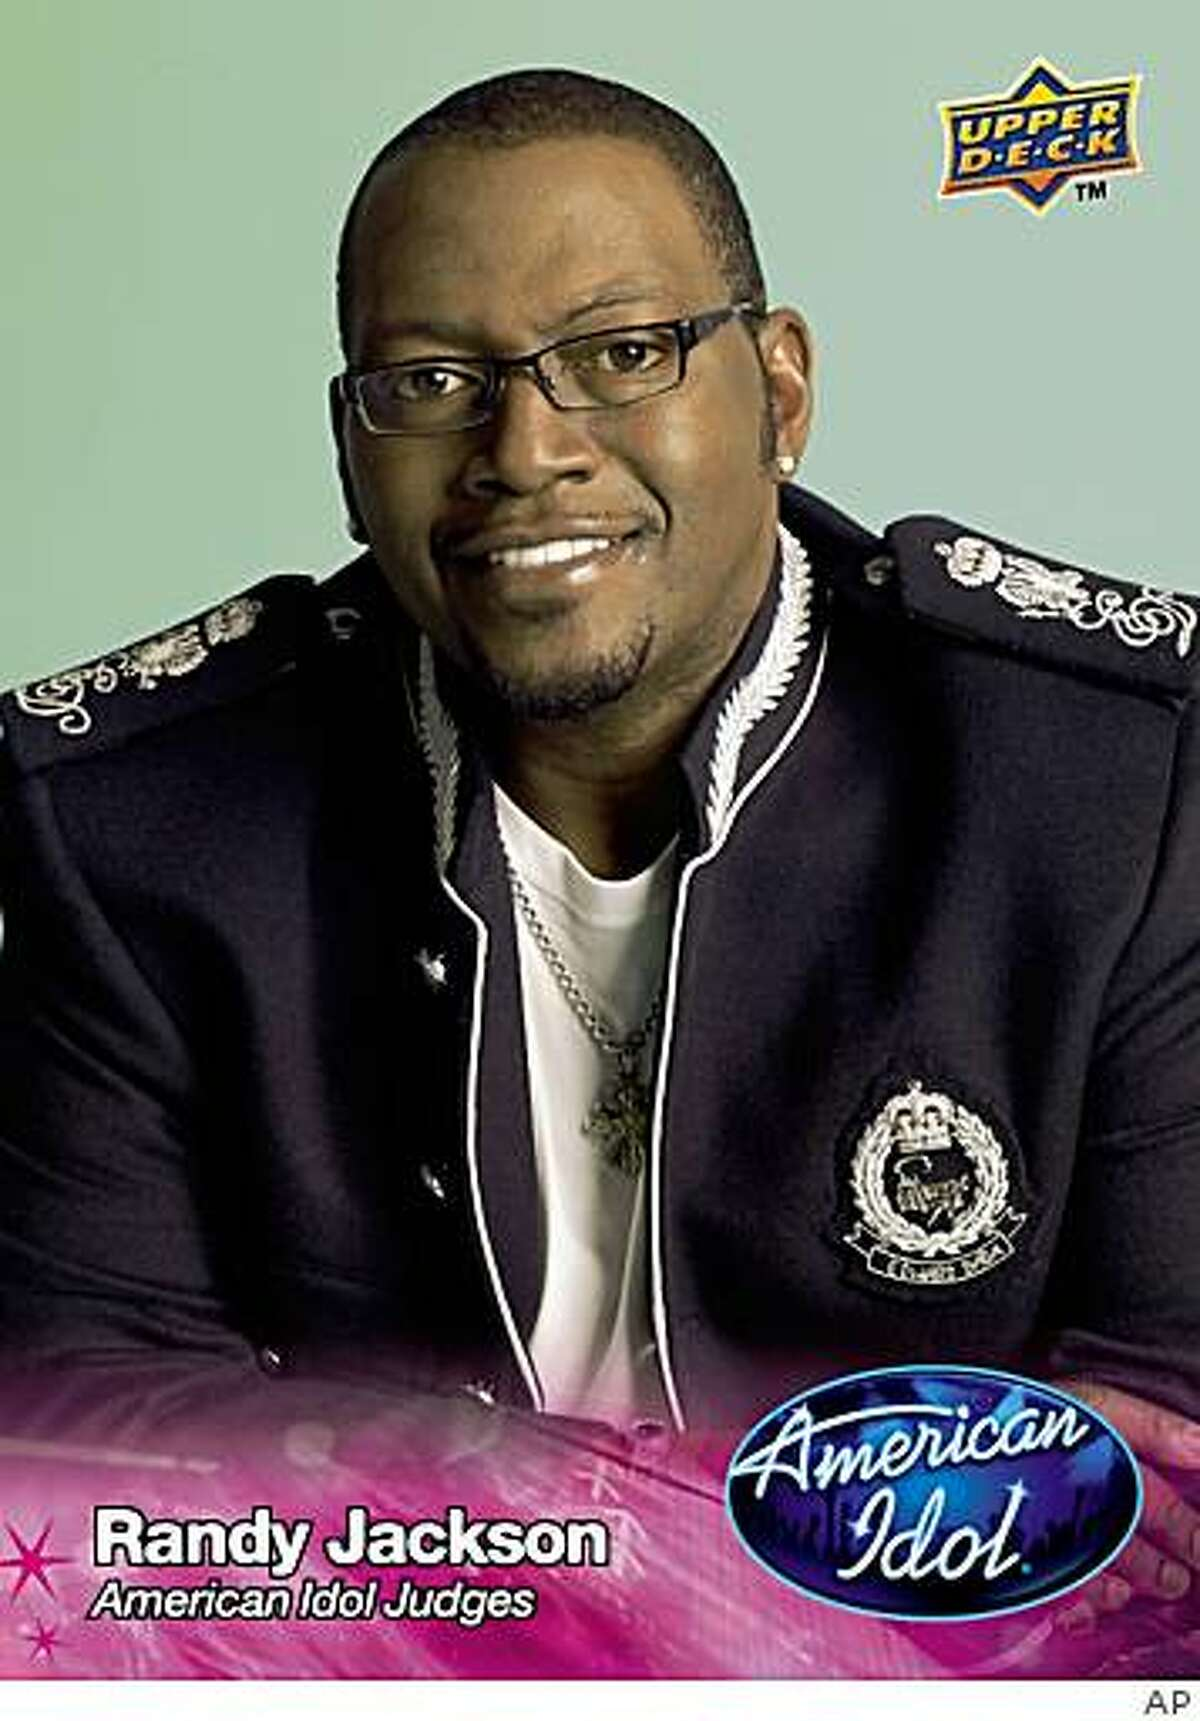 """In this trading card image released by FremantleMedia and trading card publisher Upper Deck, an """"American Idol"""" trading card featuring judge Randy Jackson, is shown."""